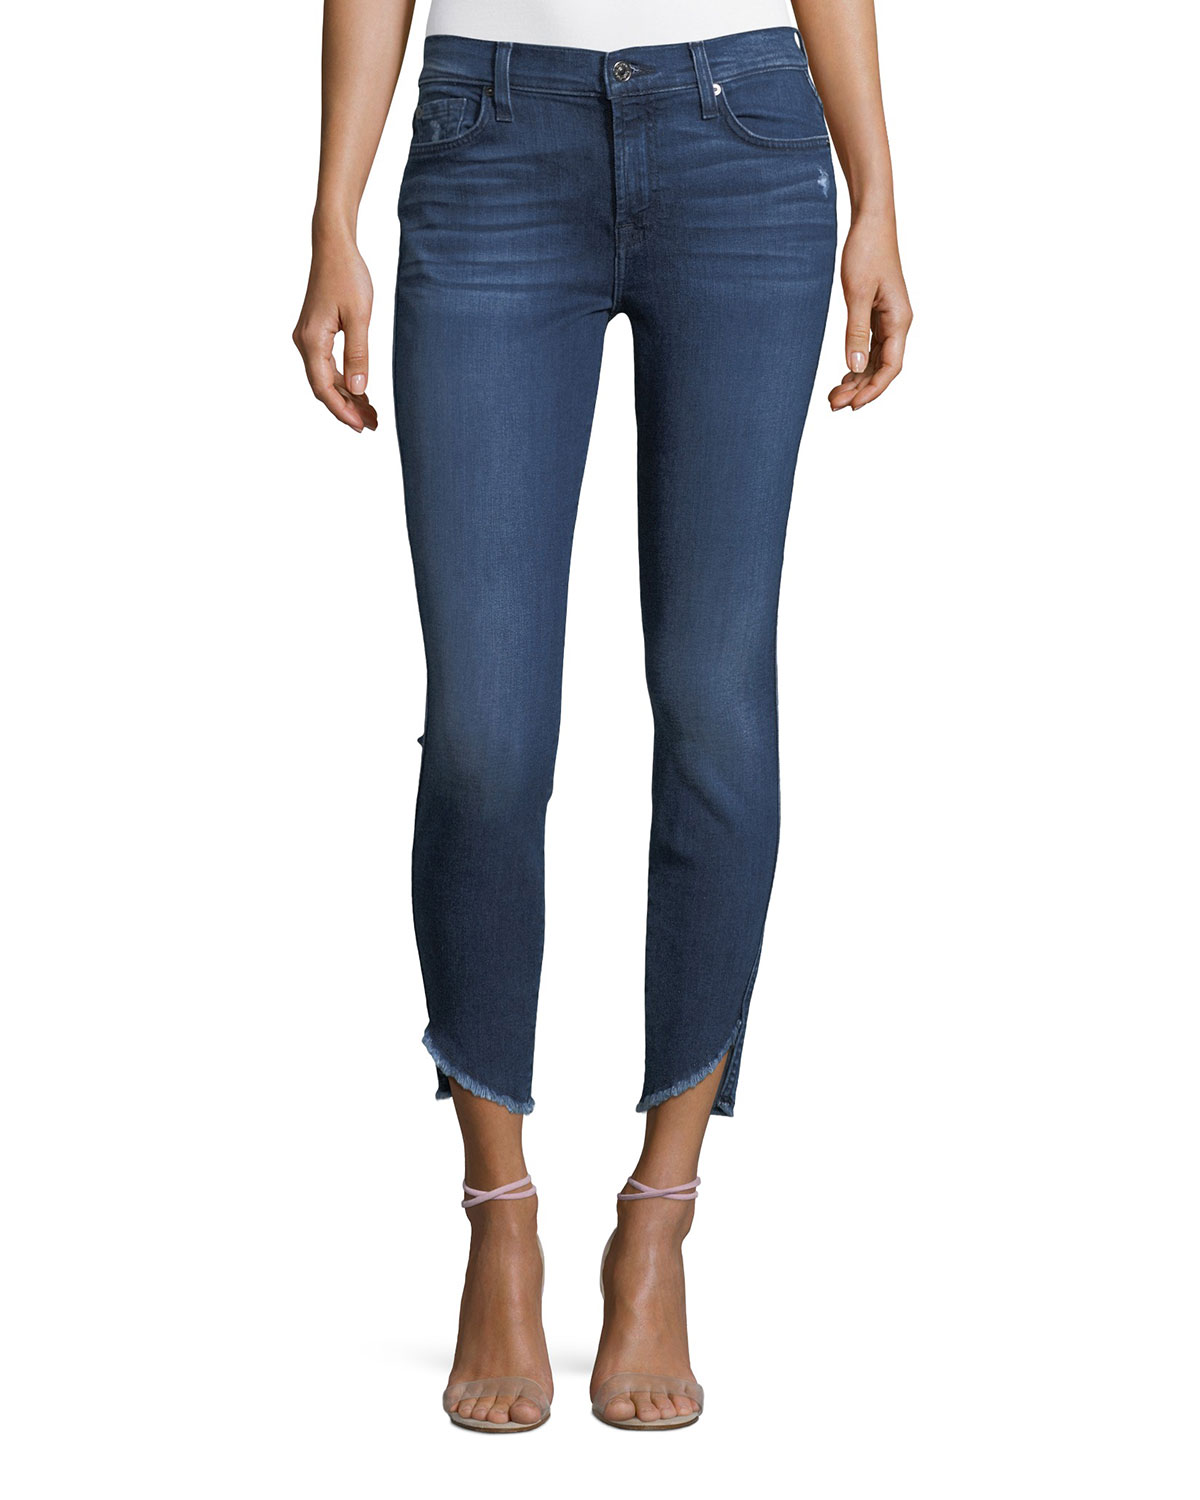 Skinny-Leg Ankle Jeans with Raw Angled Hem